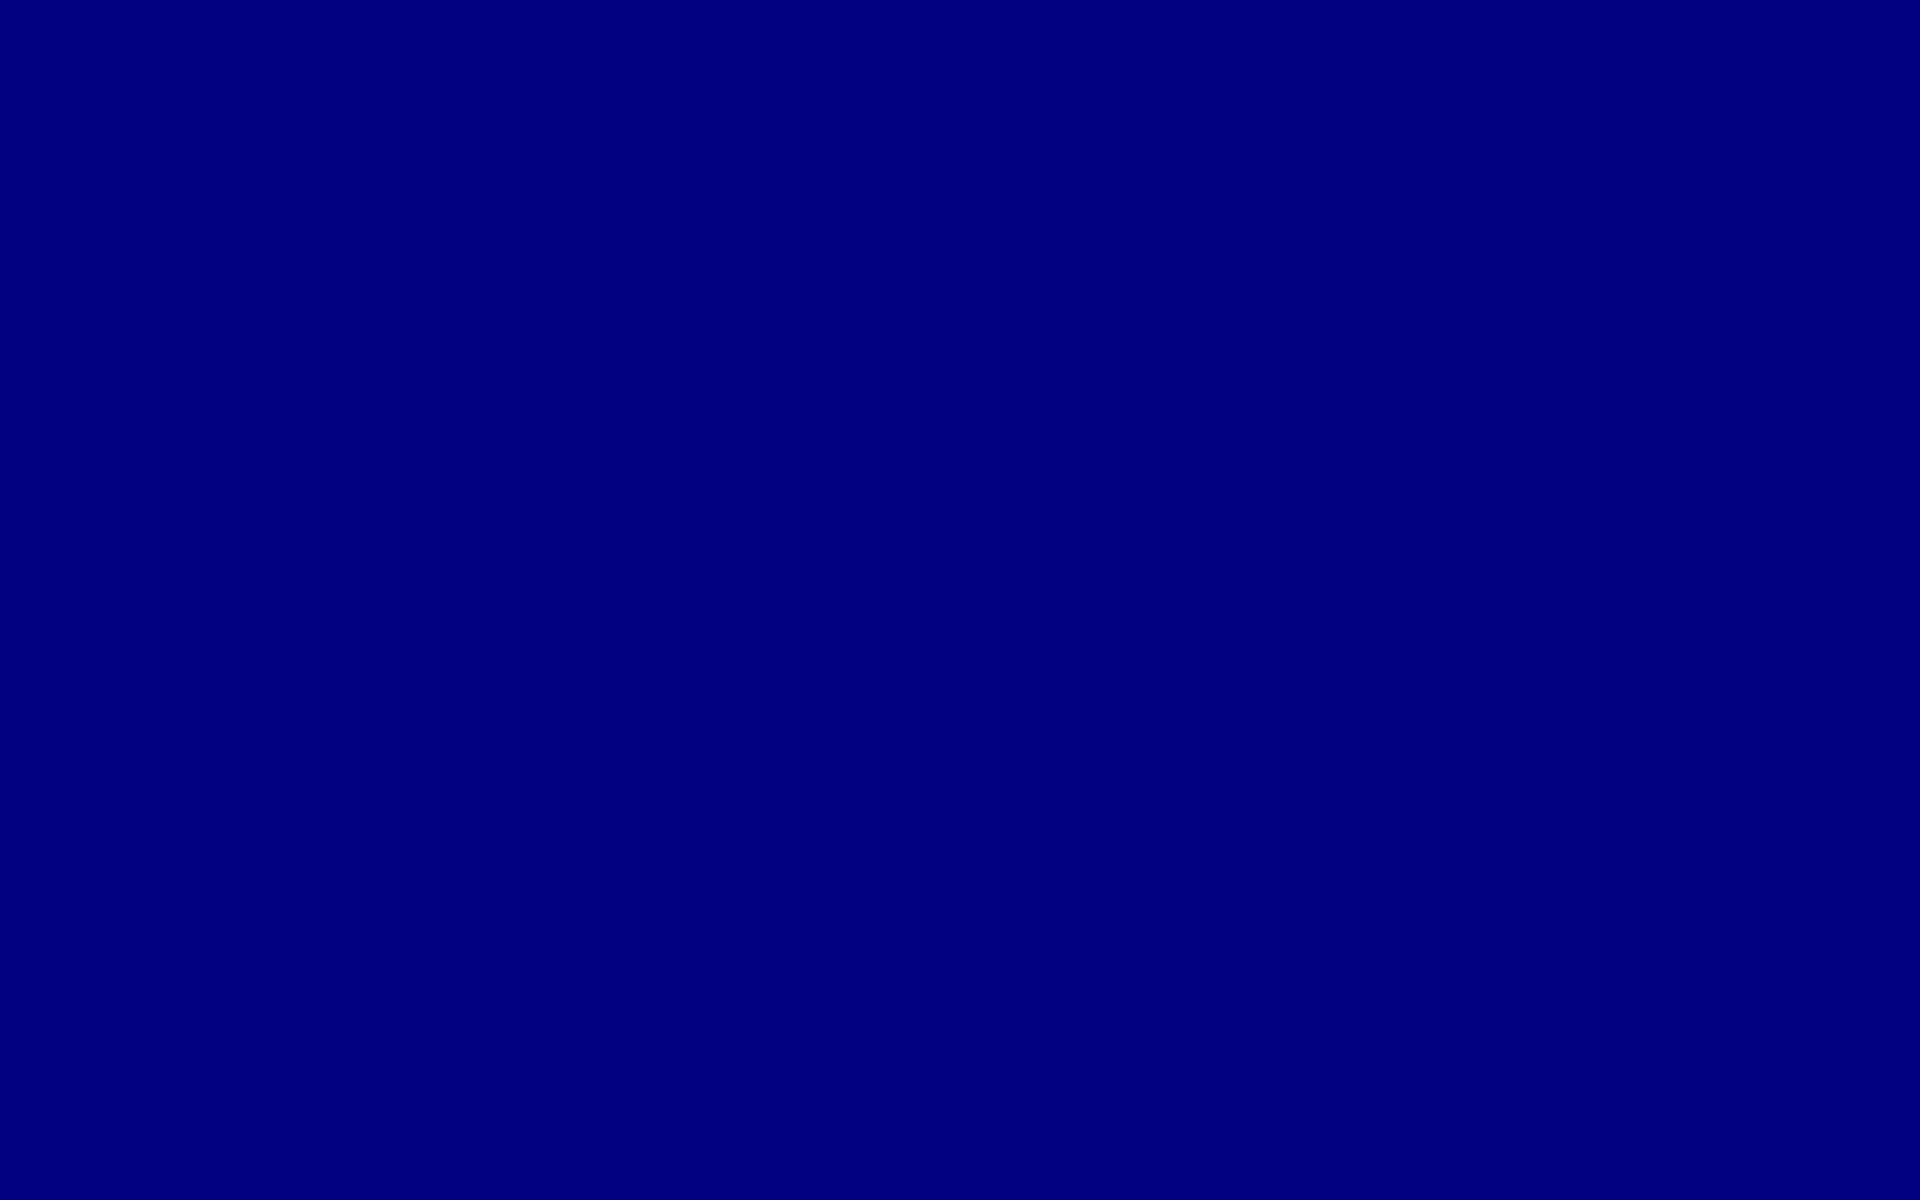 1920x1200 Navy Blue Solid Color Background